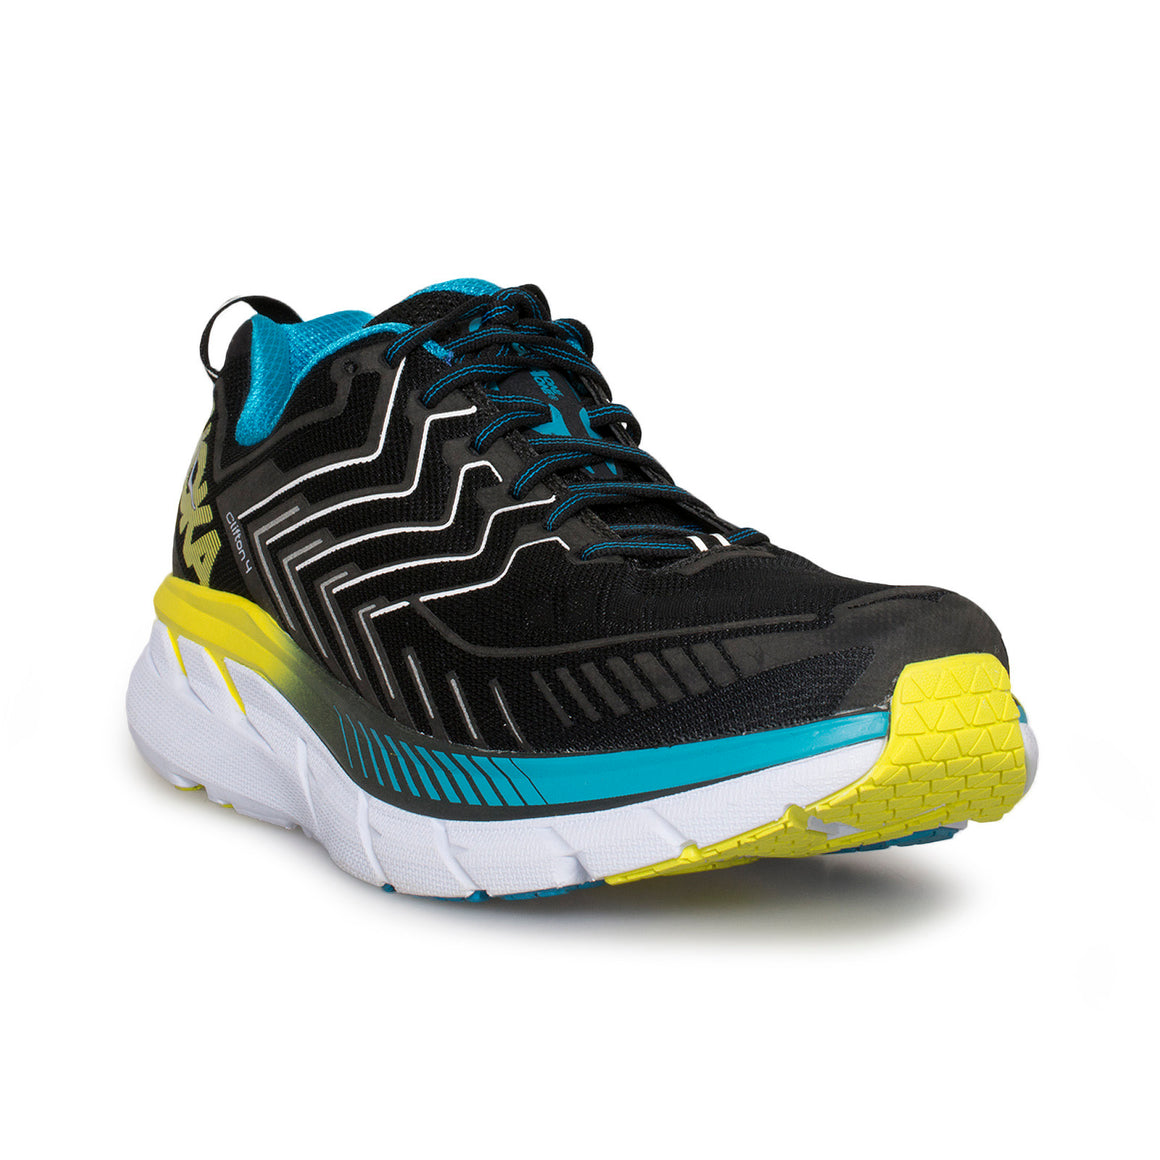 Hoka One One Clifton 4 Black / Cyan / Citrus Running Shoes - Men's